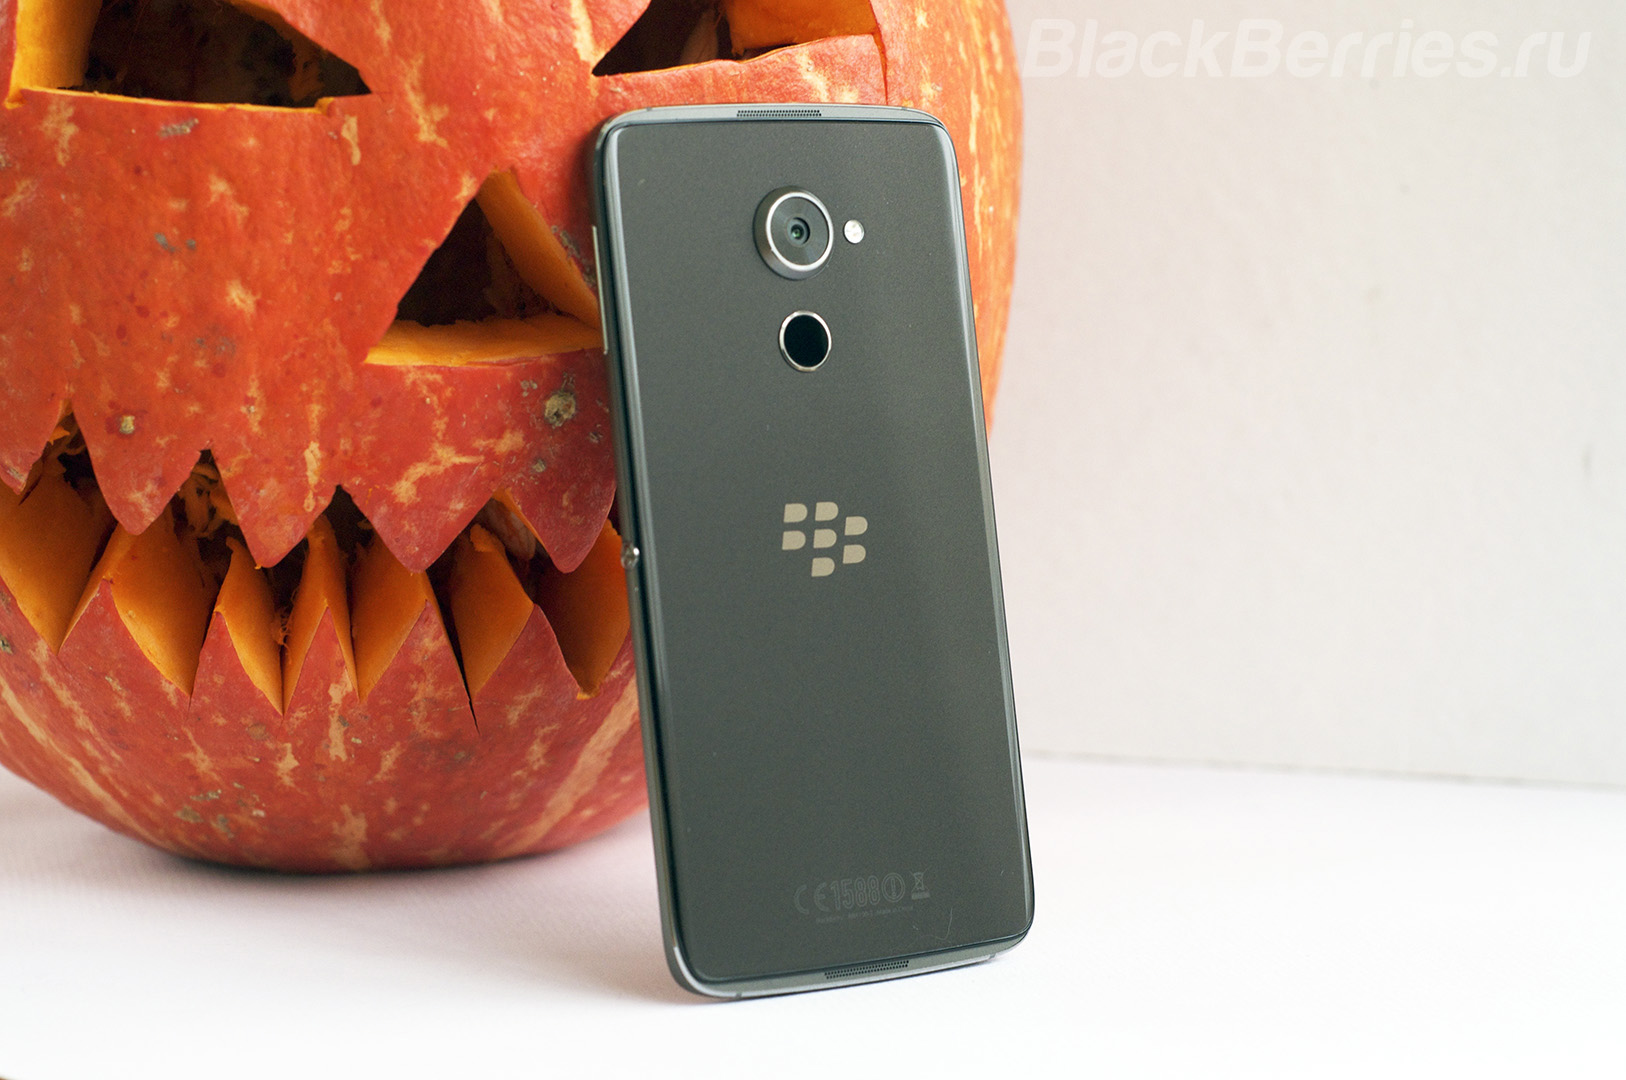 blackberry-dtek60-04